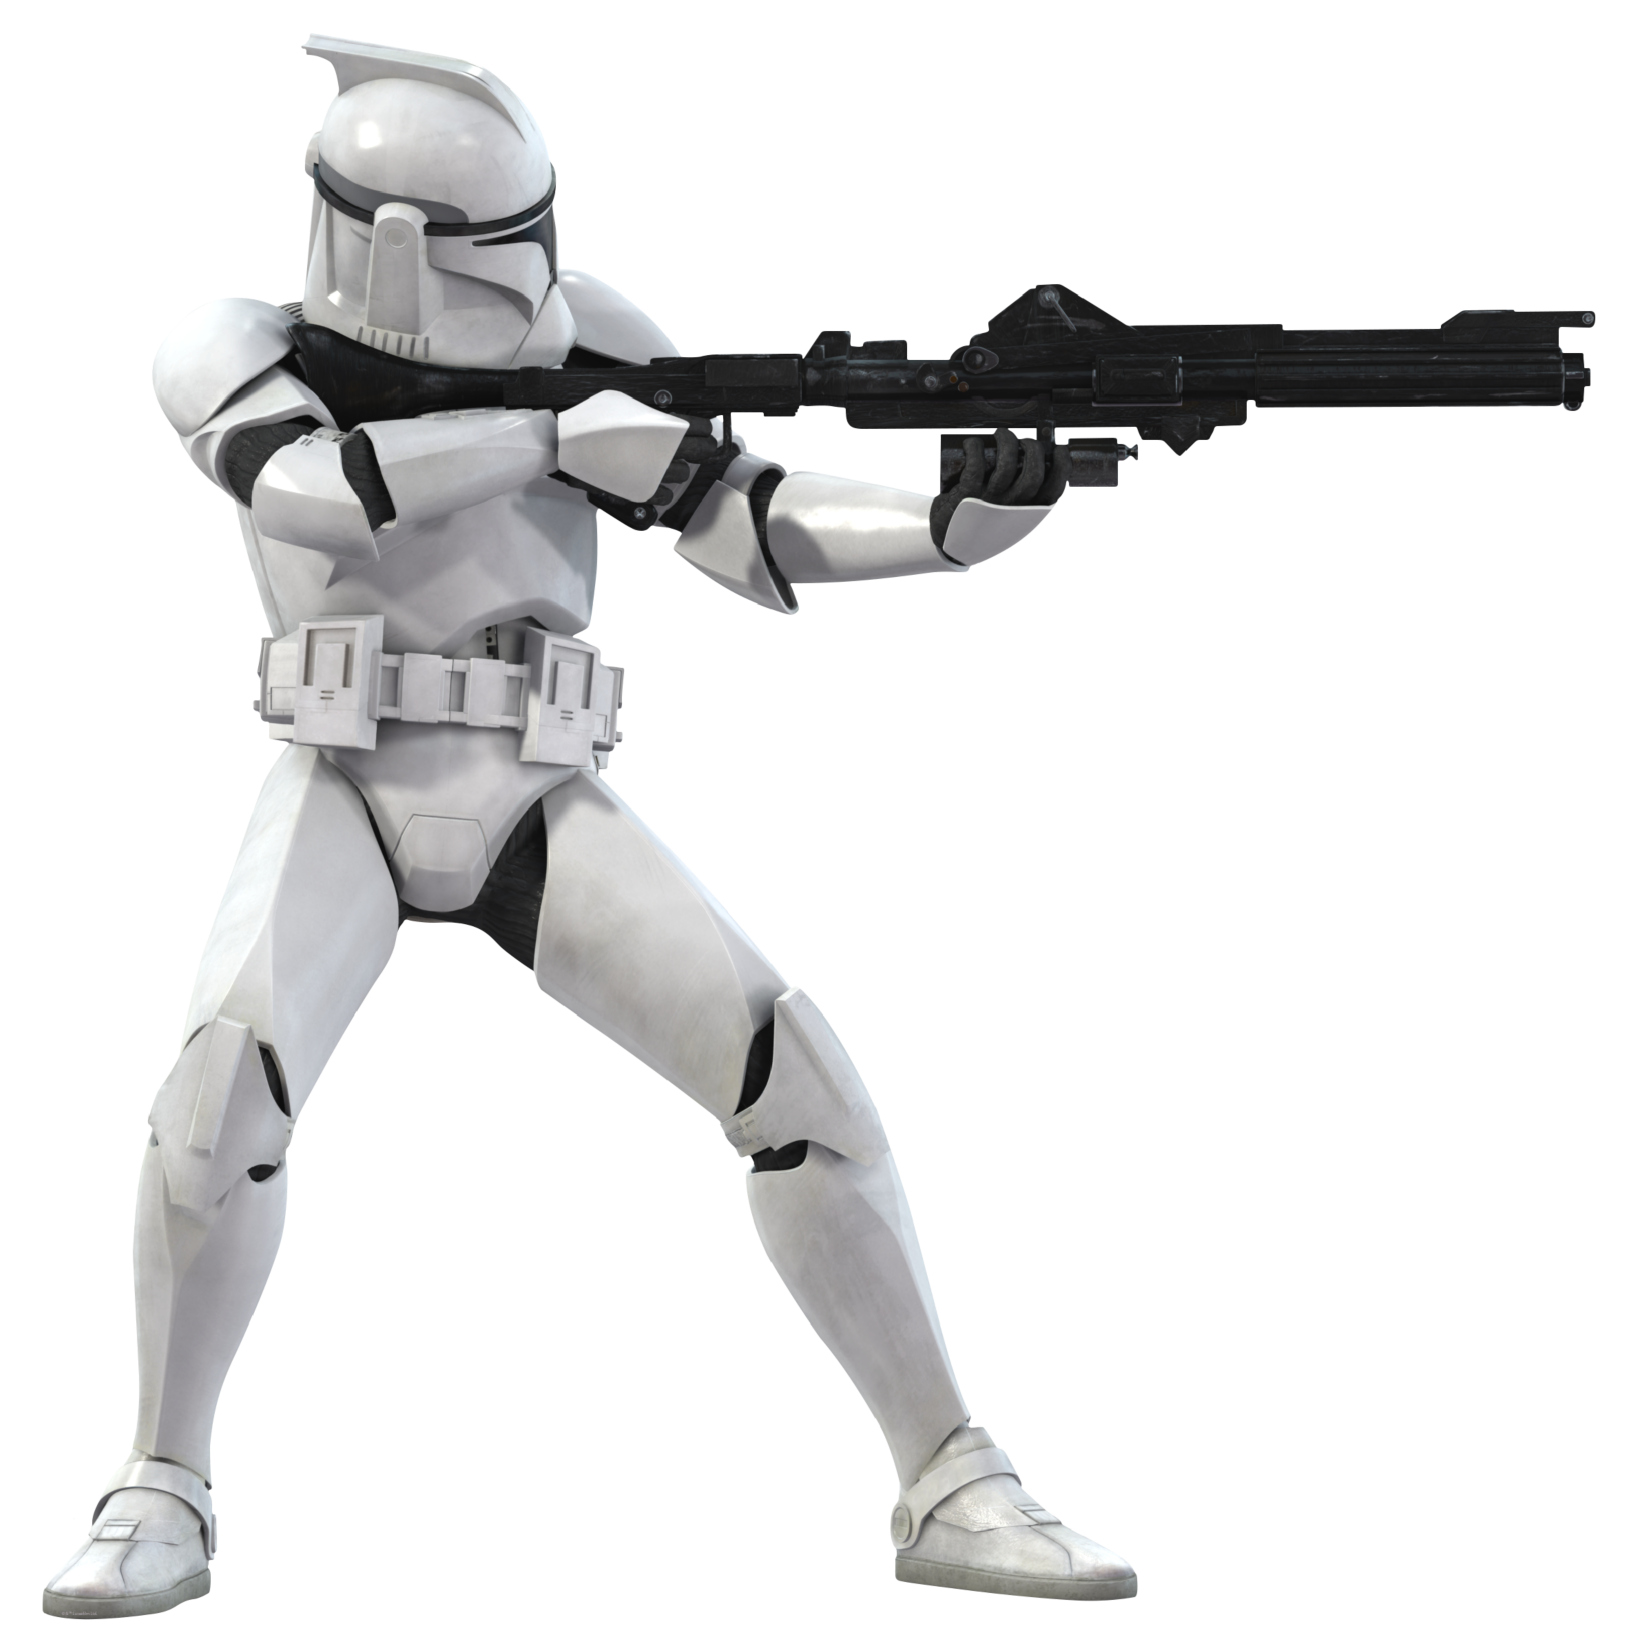 Shooting drawing clone trooper. Dc a blaster rifle